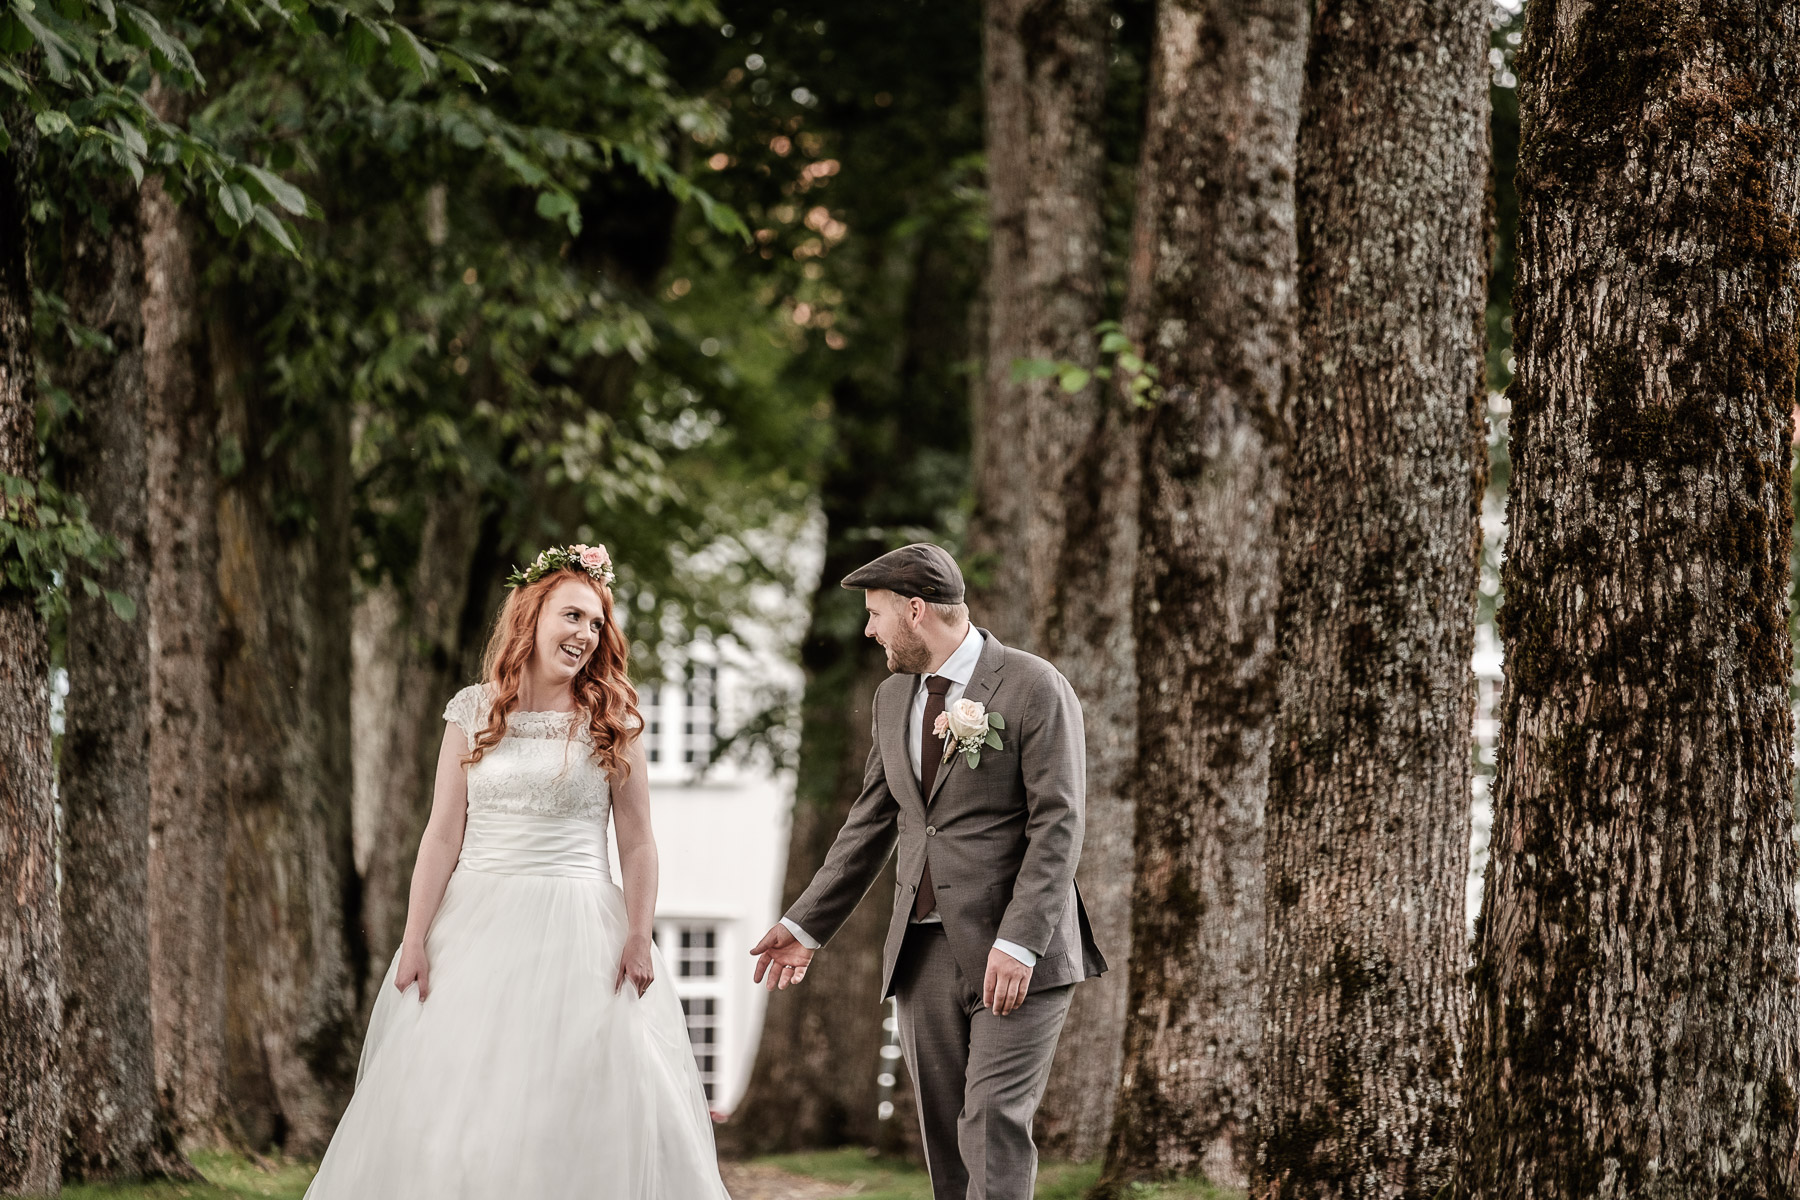 Click to enlarge image elise-christoffer-eidsvoll-ottossonphoto-1024.jpg